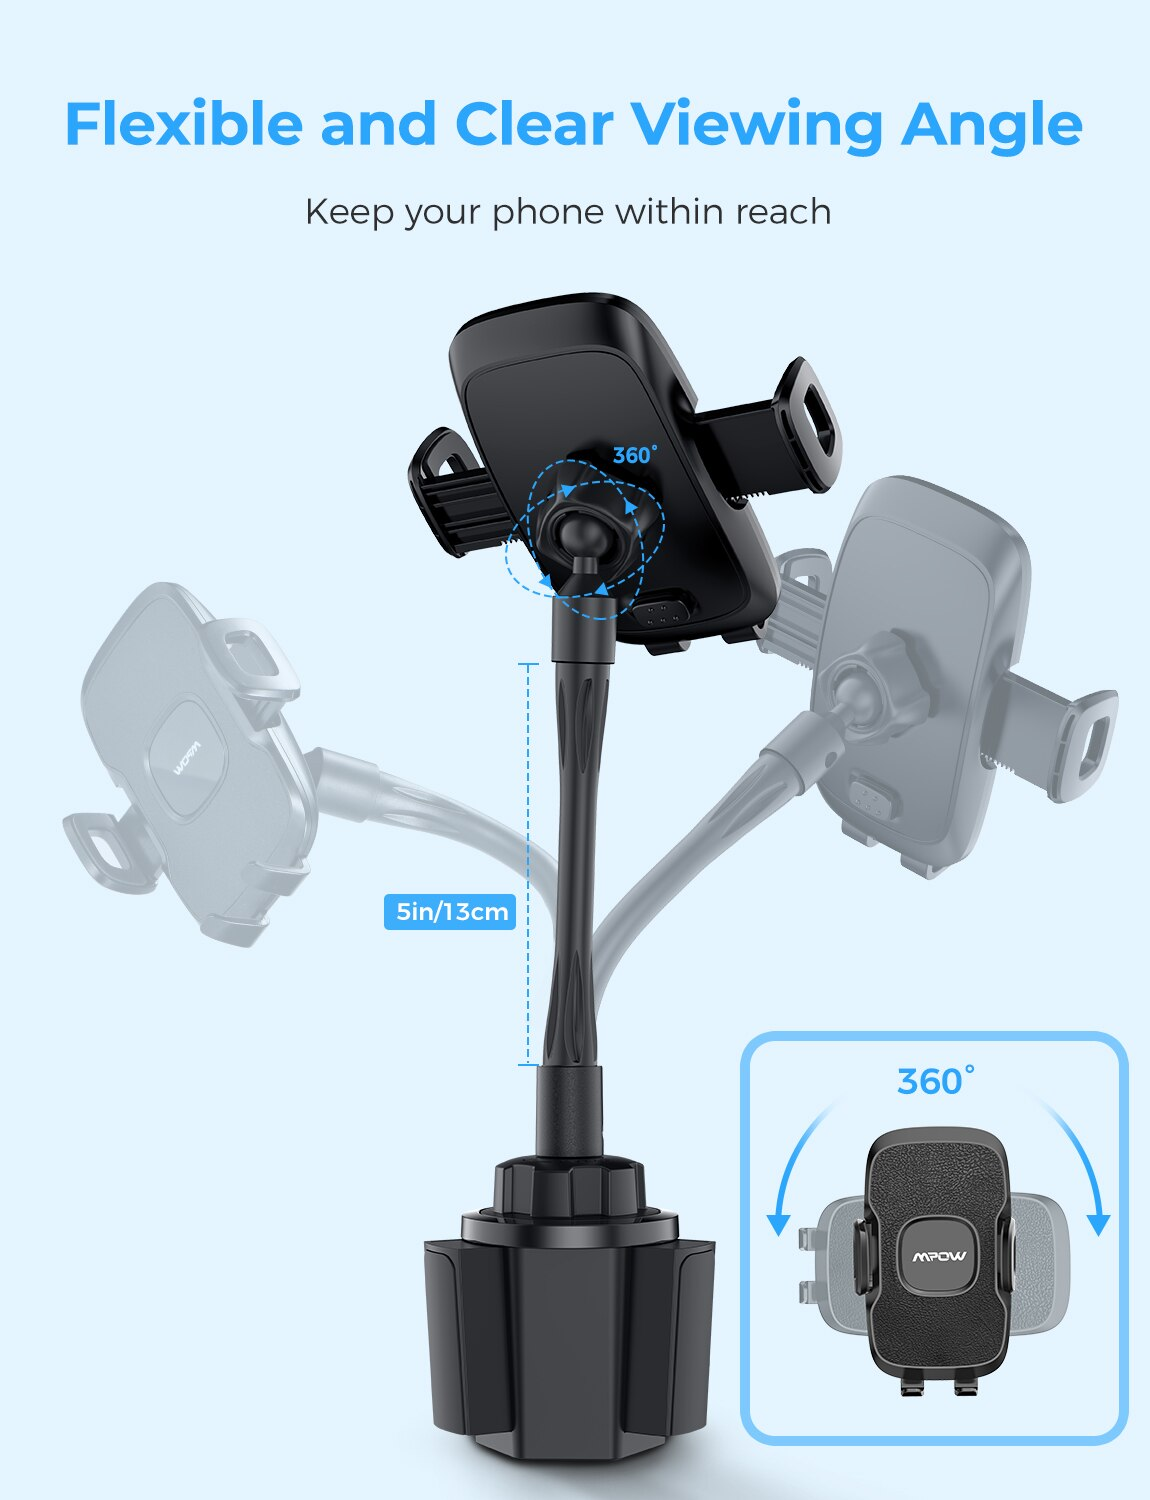 Hac35b19ee4ac4c22992439c7d5bc8b77D - MPOW CA136 Cup Phone Holder for Car One-Hand Operation Phone Cradle Mount Flexible Long Arm Adjustable Clamp for iPhone Galaxy